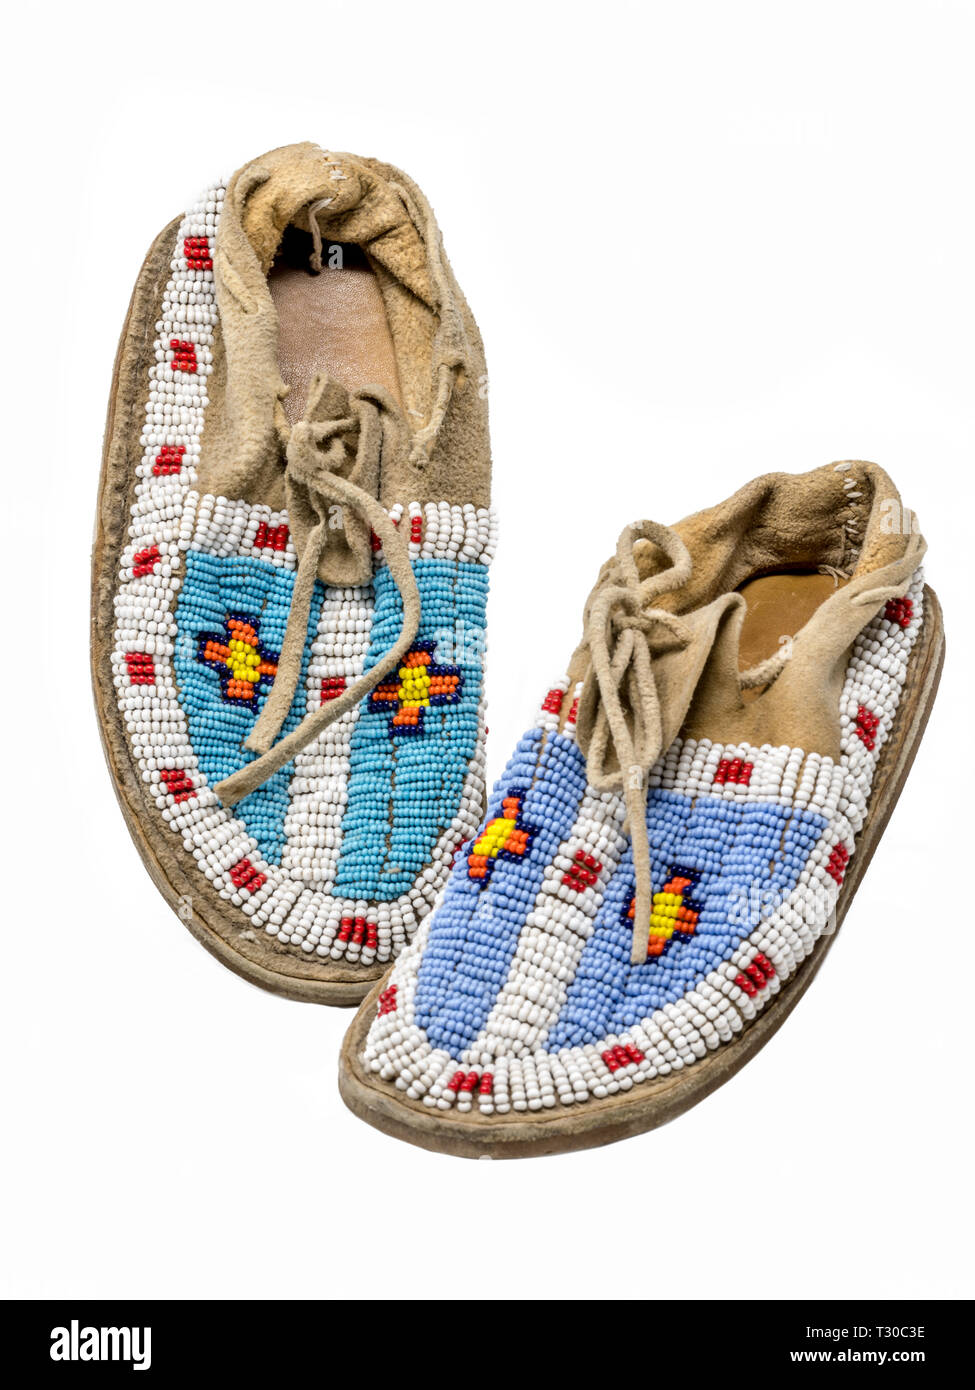 Pearl-embroidered moccasins of the North American Indians isolated on white - Stock Image